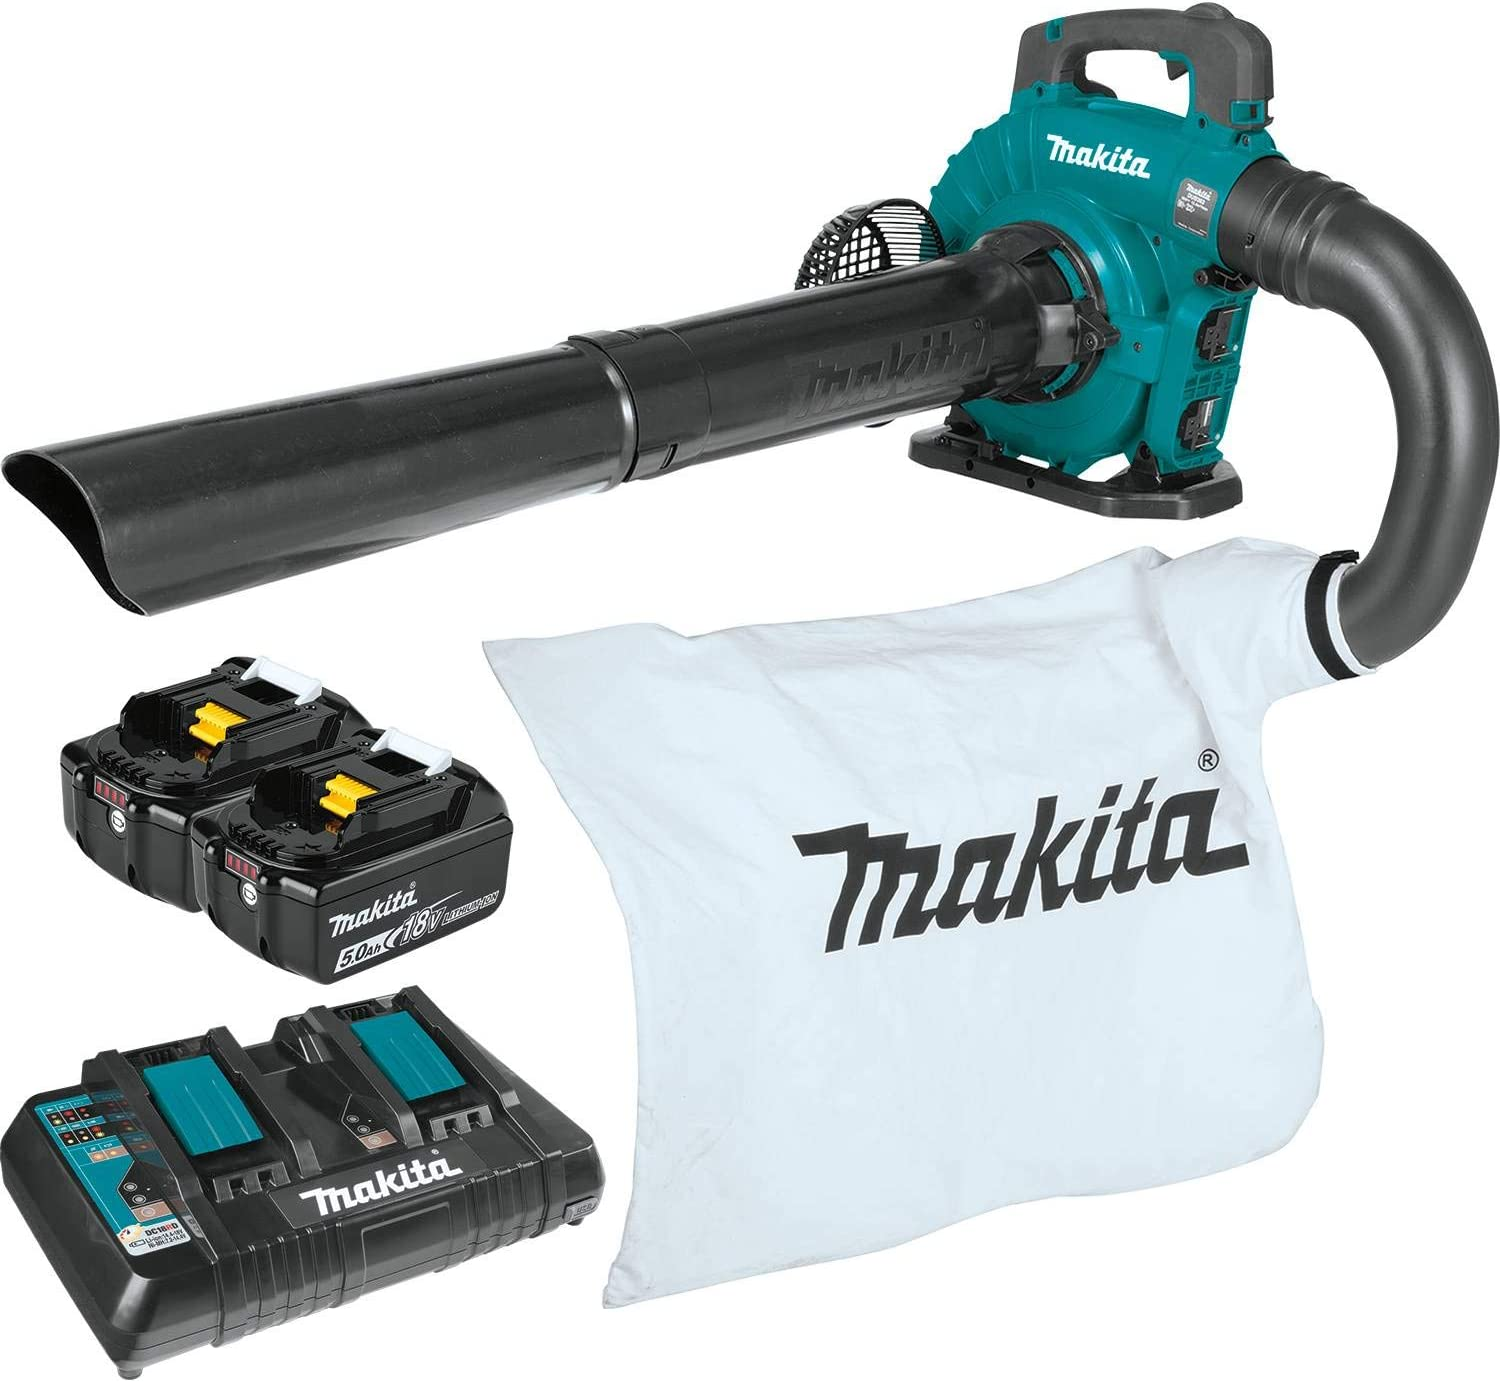 Makita XBU04PTV Lithium-Ion Brushless Cordless 18V X2 (36V) LXT Blower Vacuum Attachment Kit (5.0Ah), Teal